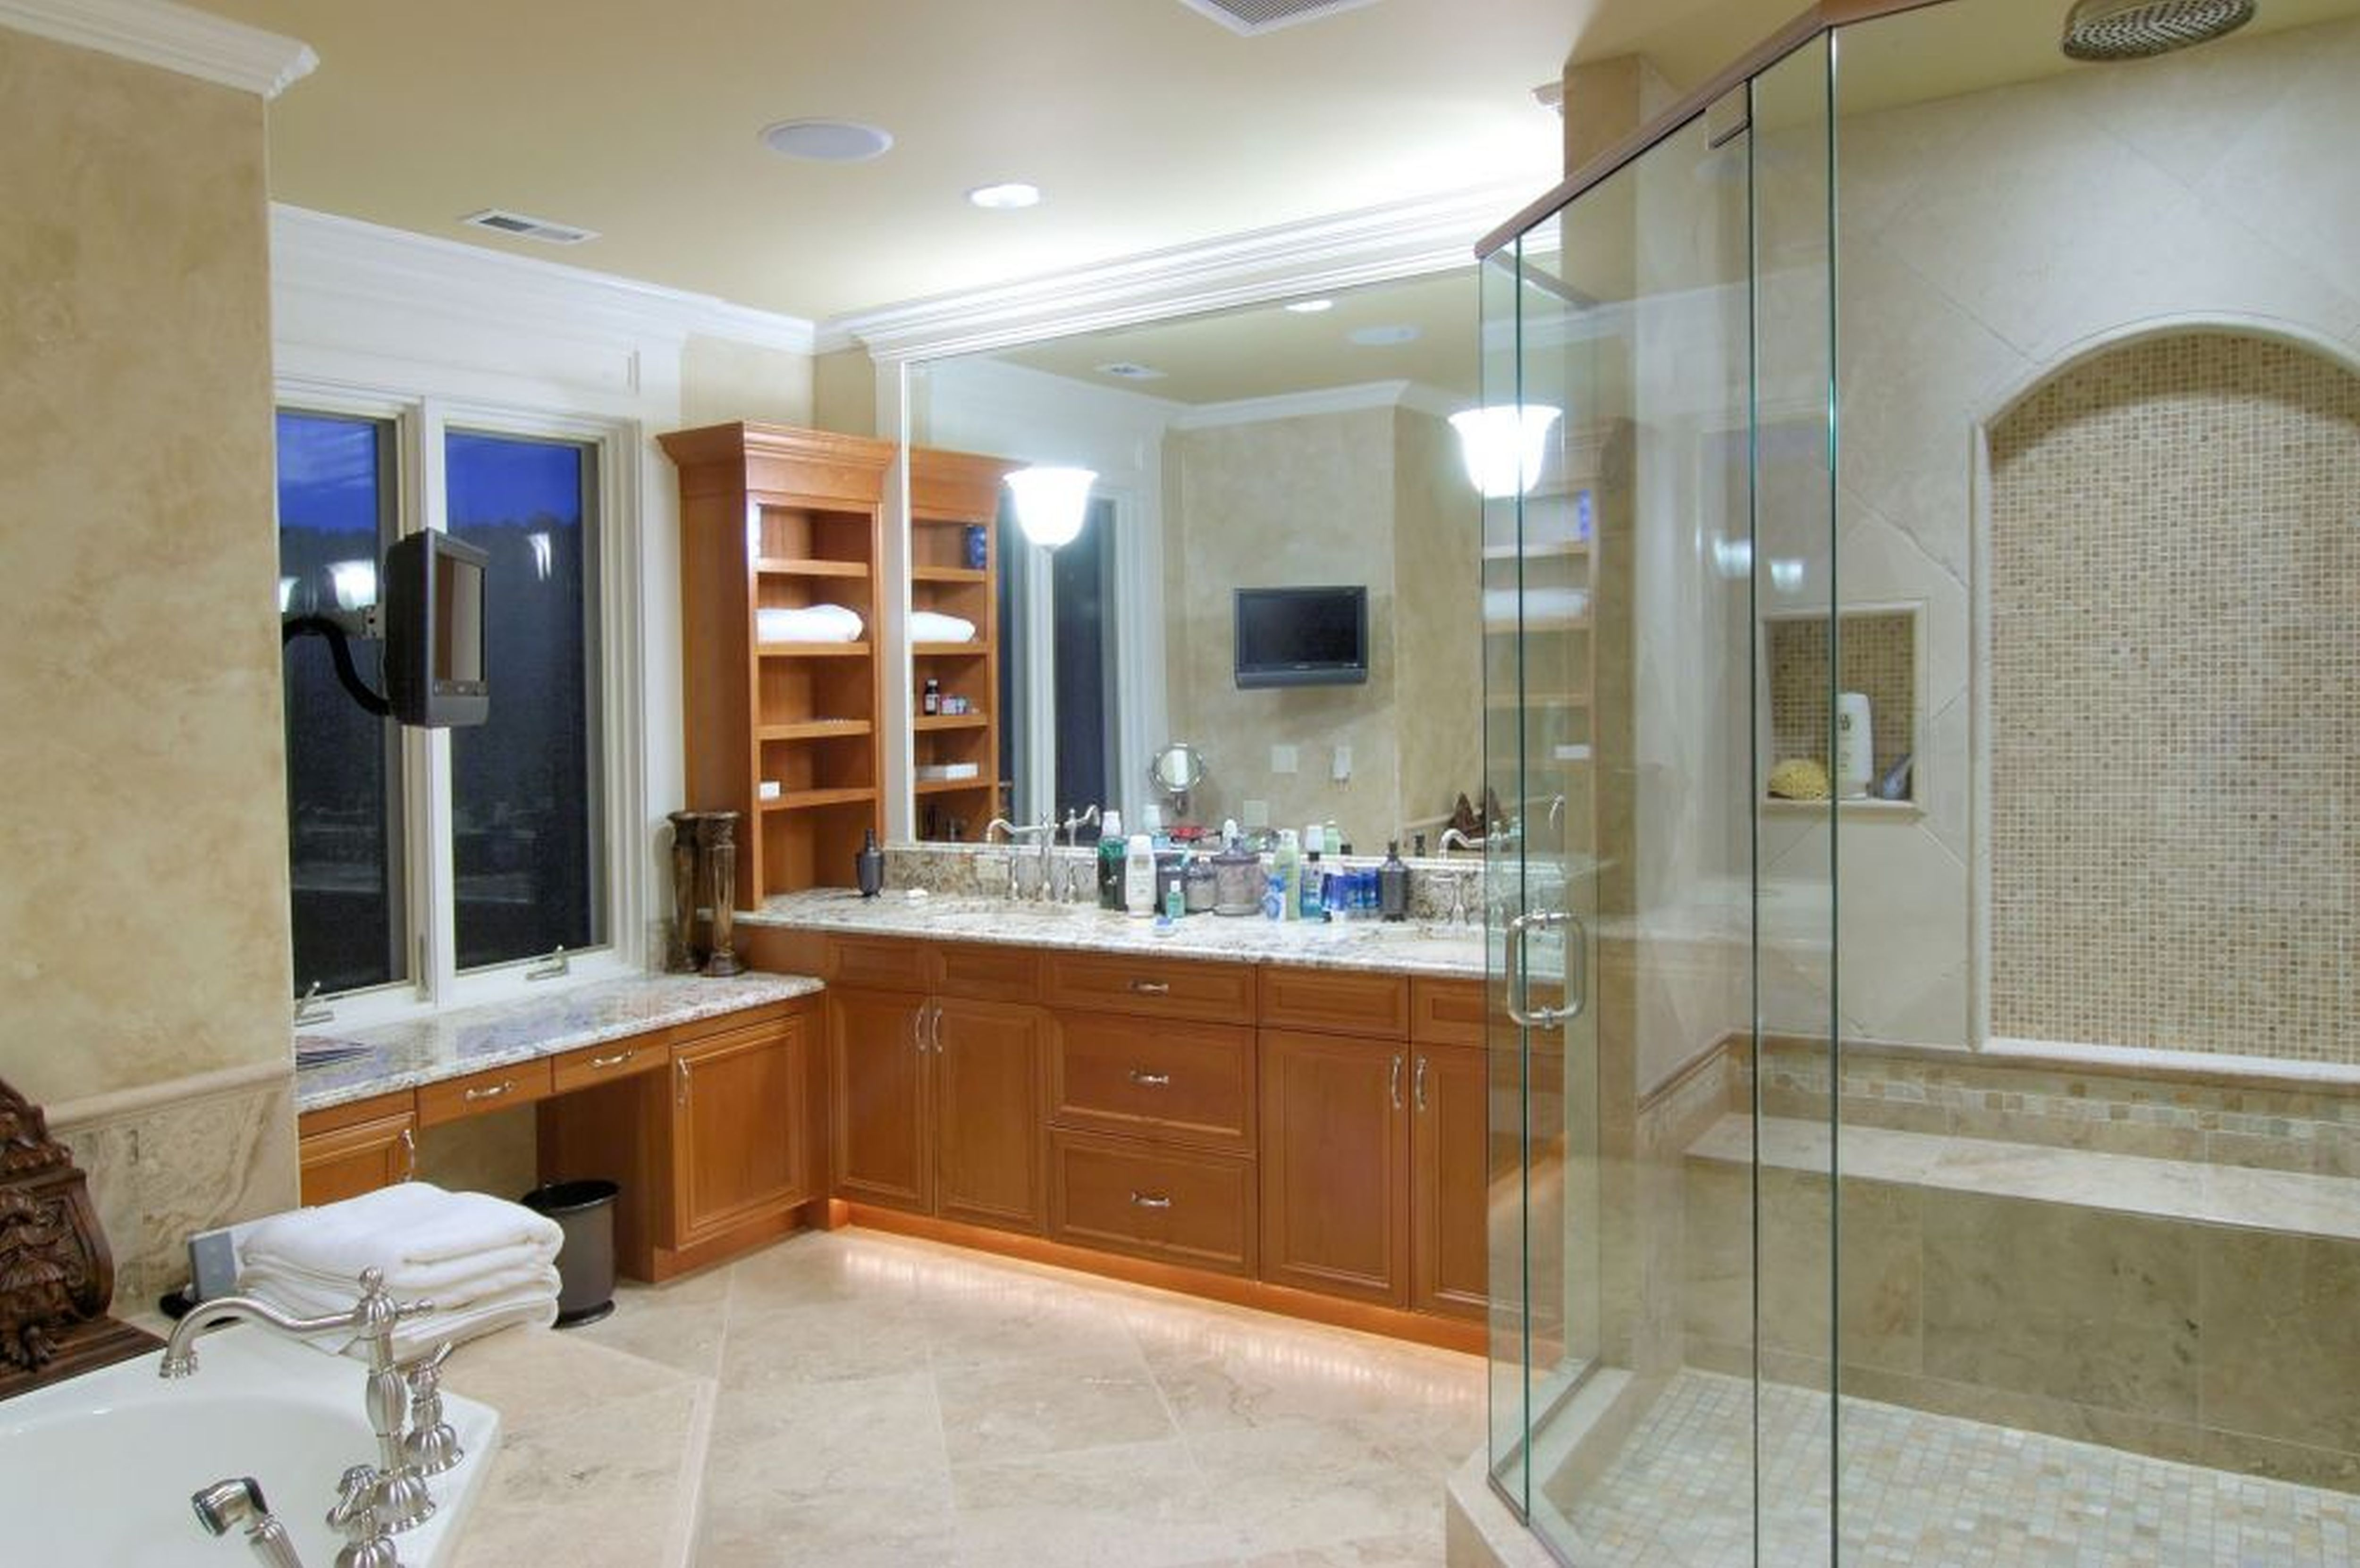 Small Bathroom Remodel Under 5000 can you remodel a bathroom for 5000 - amazing bedroom, living room